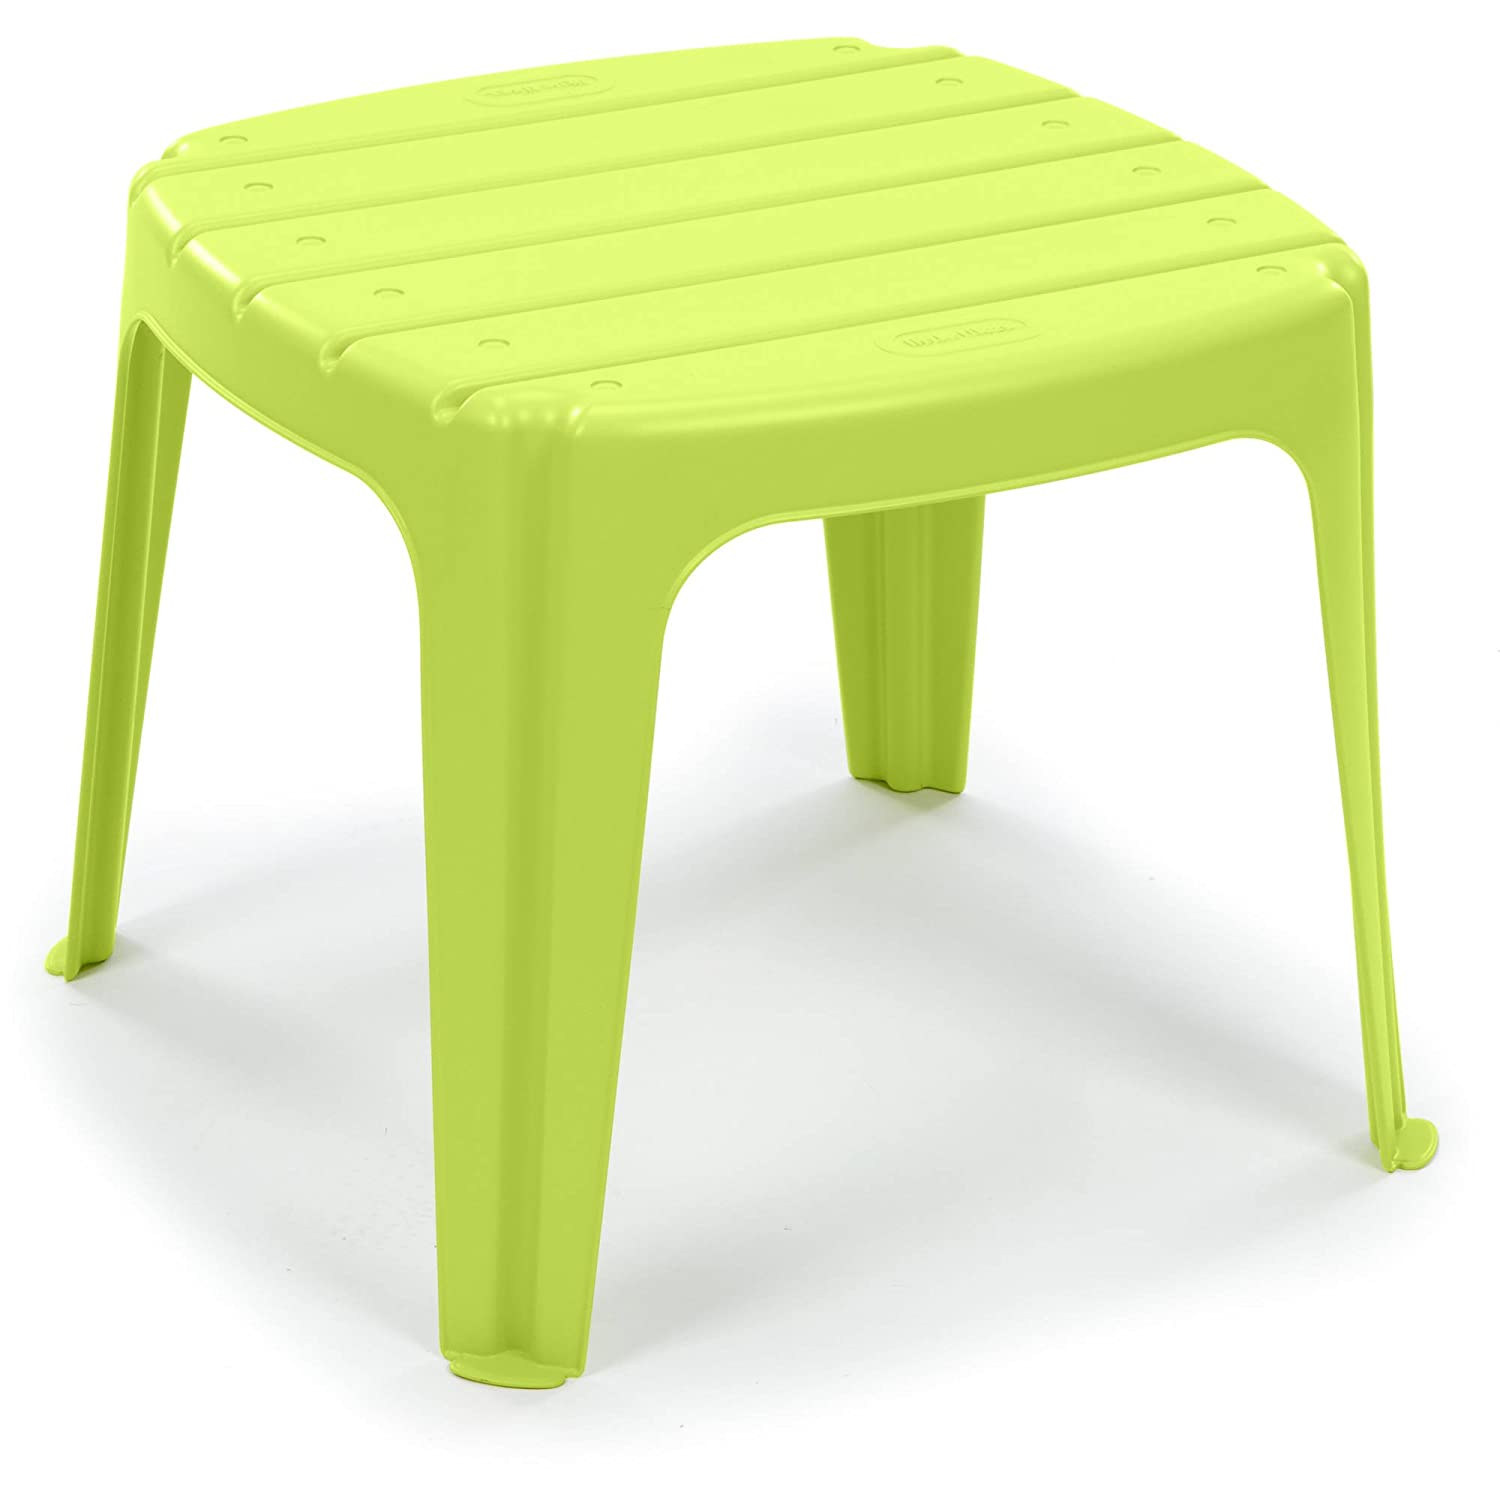 Amazon com kids or toddlers furniture use for indoor outdoor inside home the garden lawn patio beach bedroom versatile and comfortable green